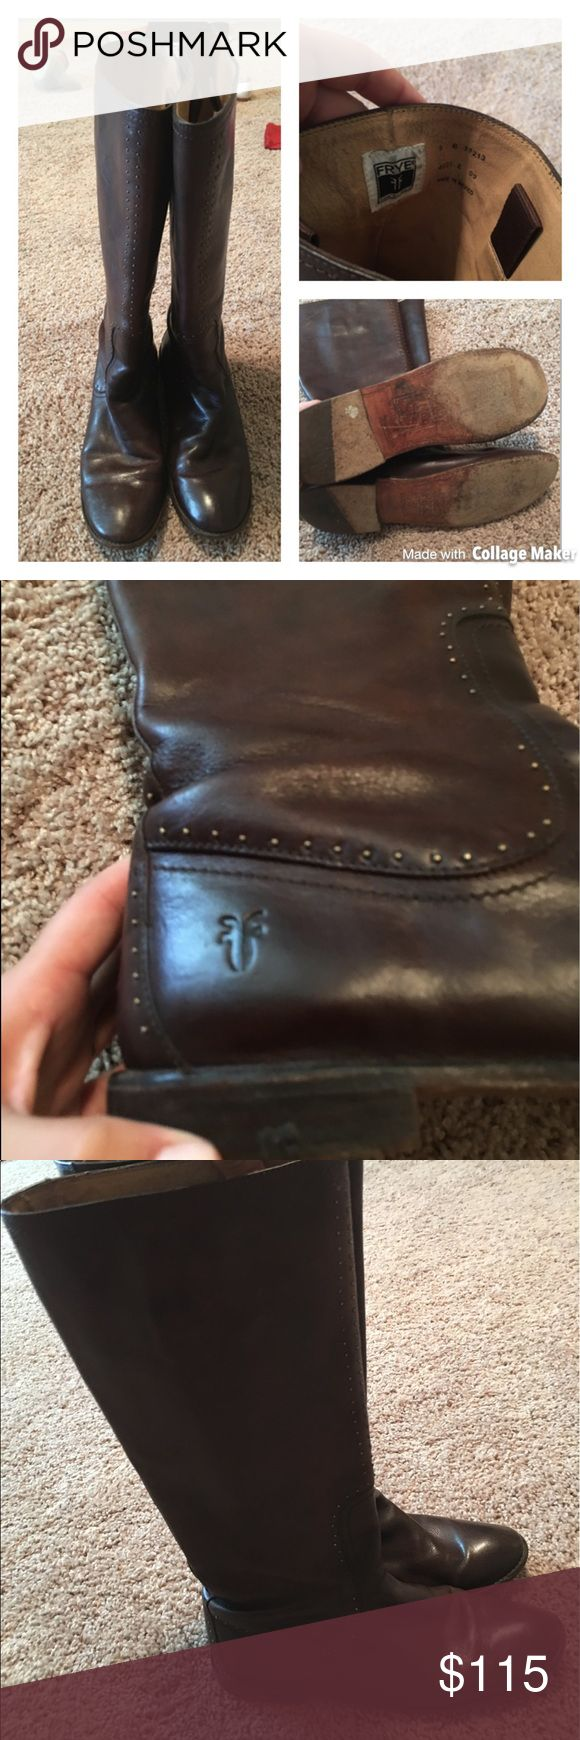 Frye Paige Mini Studded Boots GUC These don't come with a box.  They are from a smoke free environment.  They are a dark brown color.  They have small studs around the back.  They are pull on boots. Frye Shoes